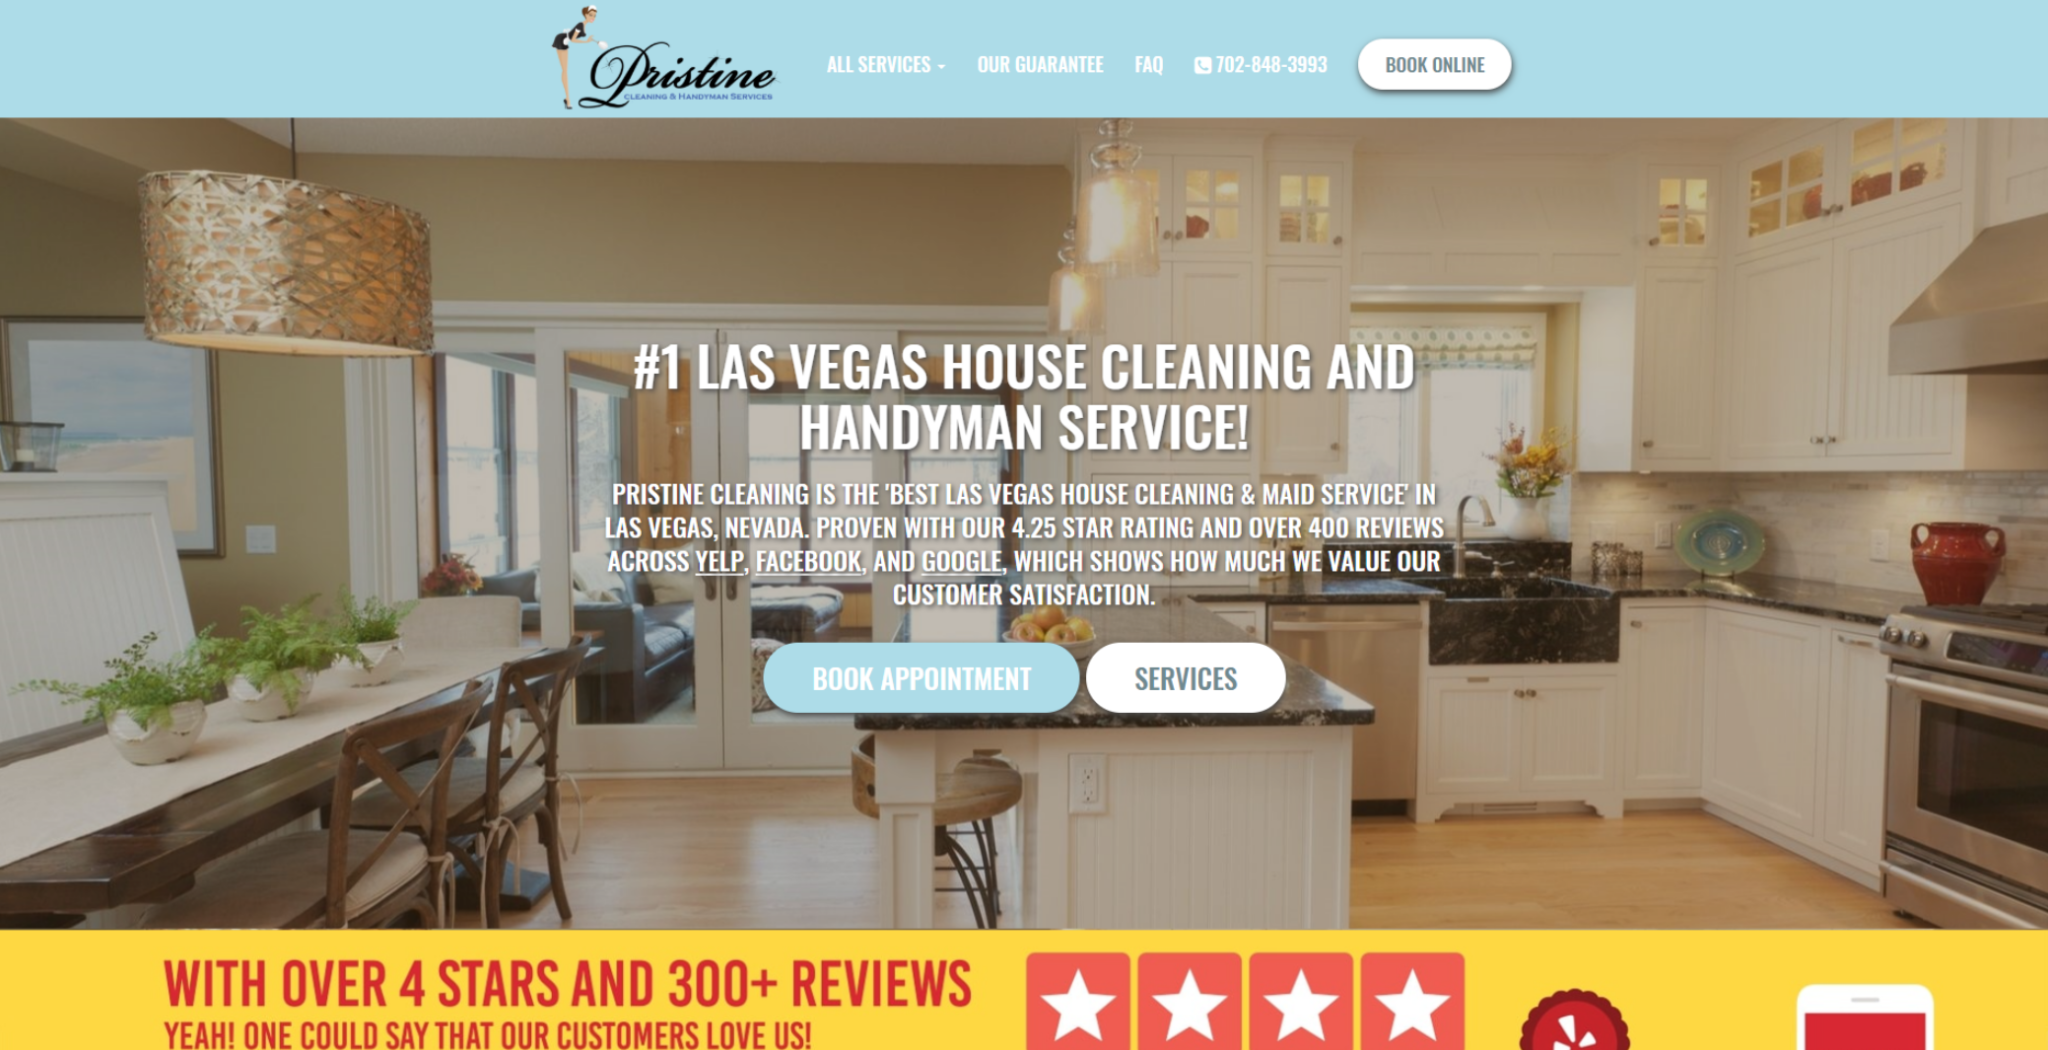 pristine house cleaning - web design example by 702 pros las vegas